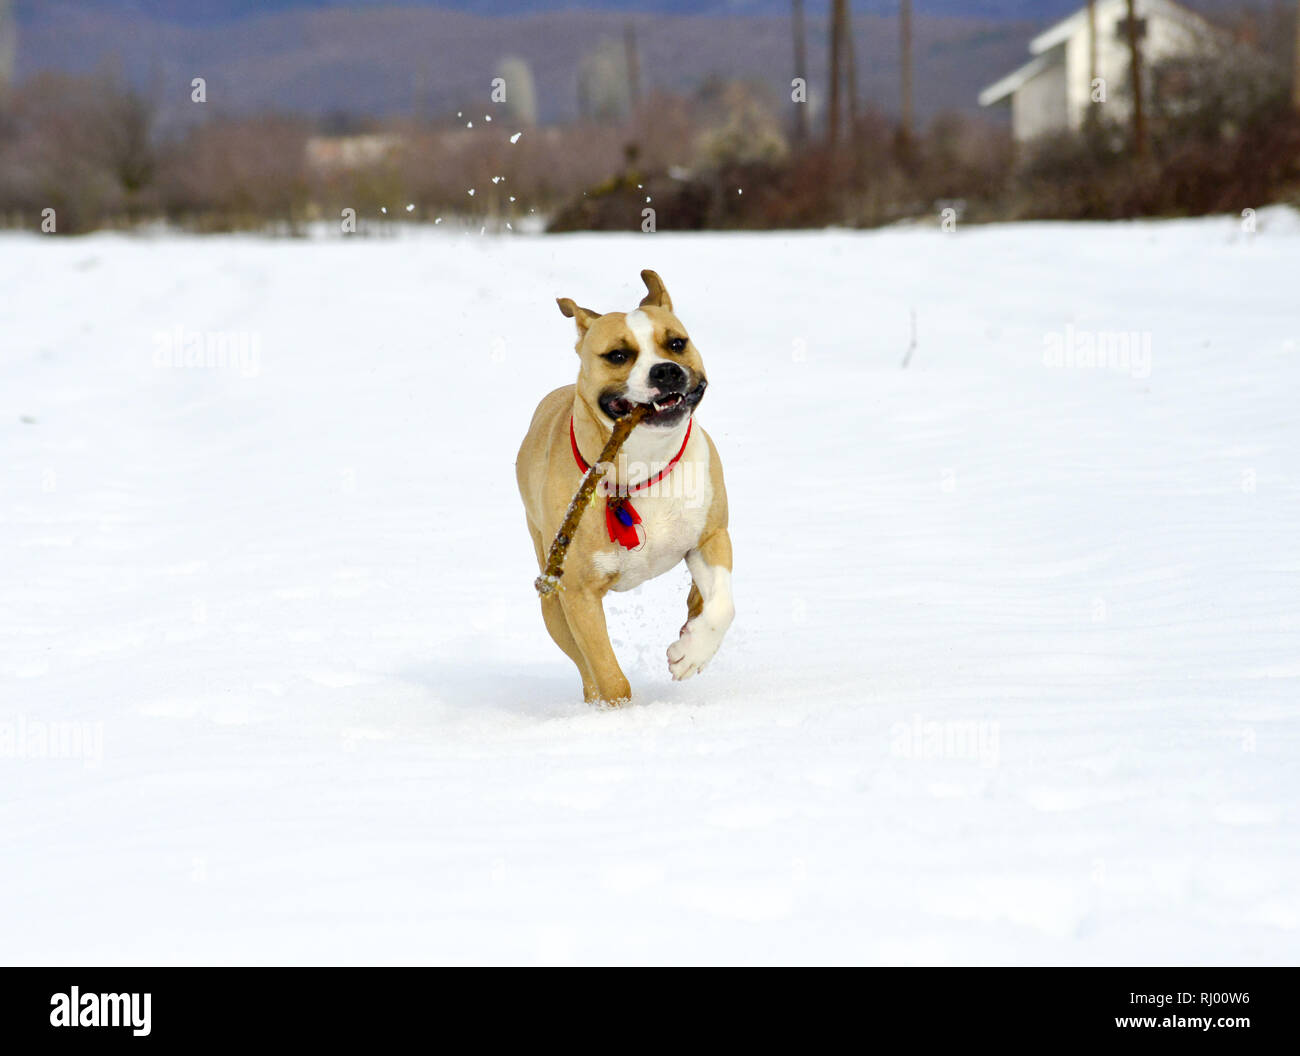 amstaff breed dog running on the snow with piece of wood in mouth, image - Stock Image